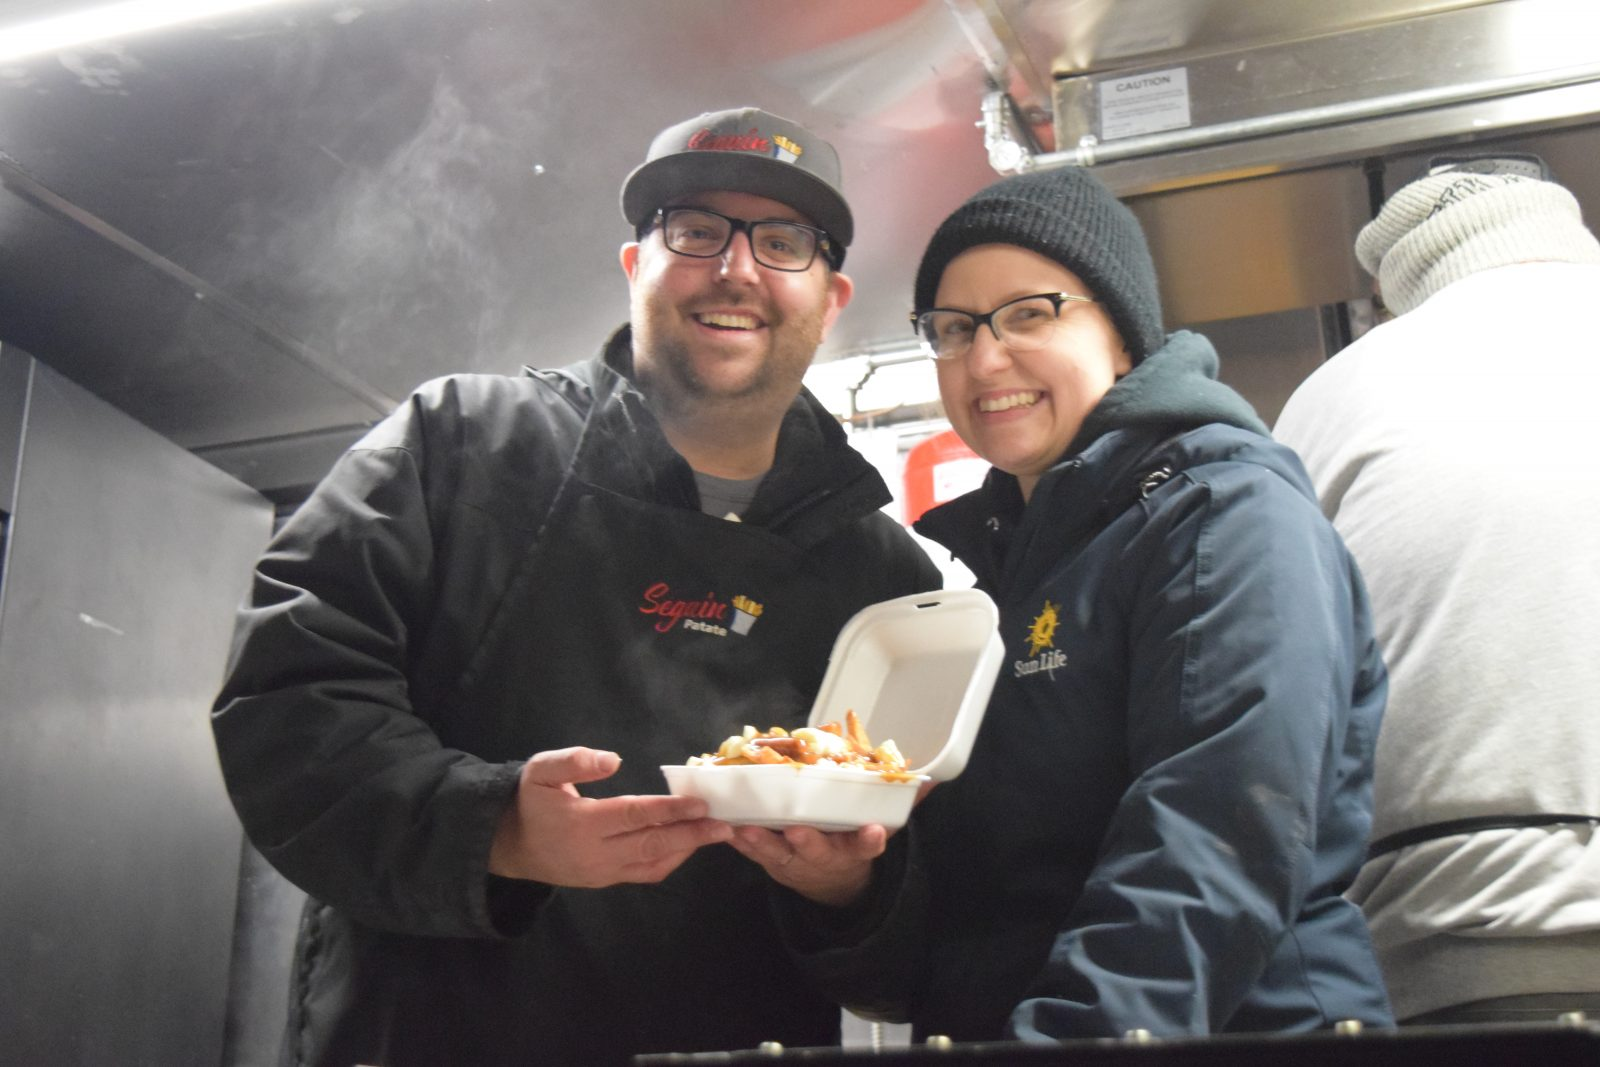 Séguin Patate rolls out new chip truck